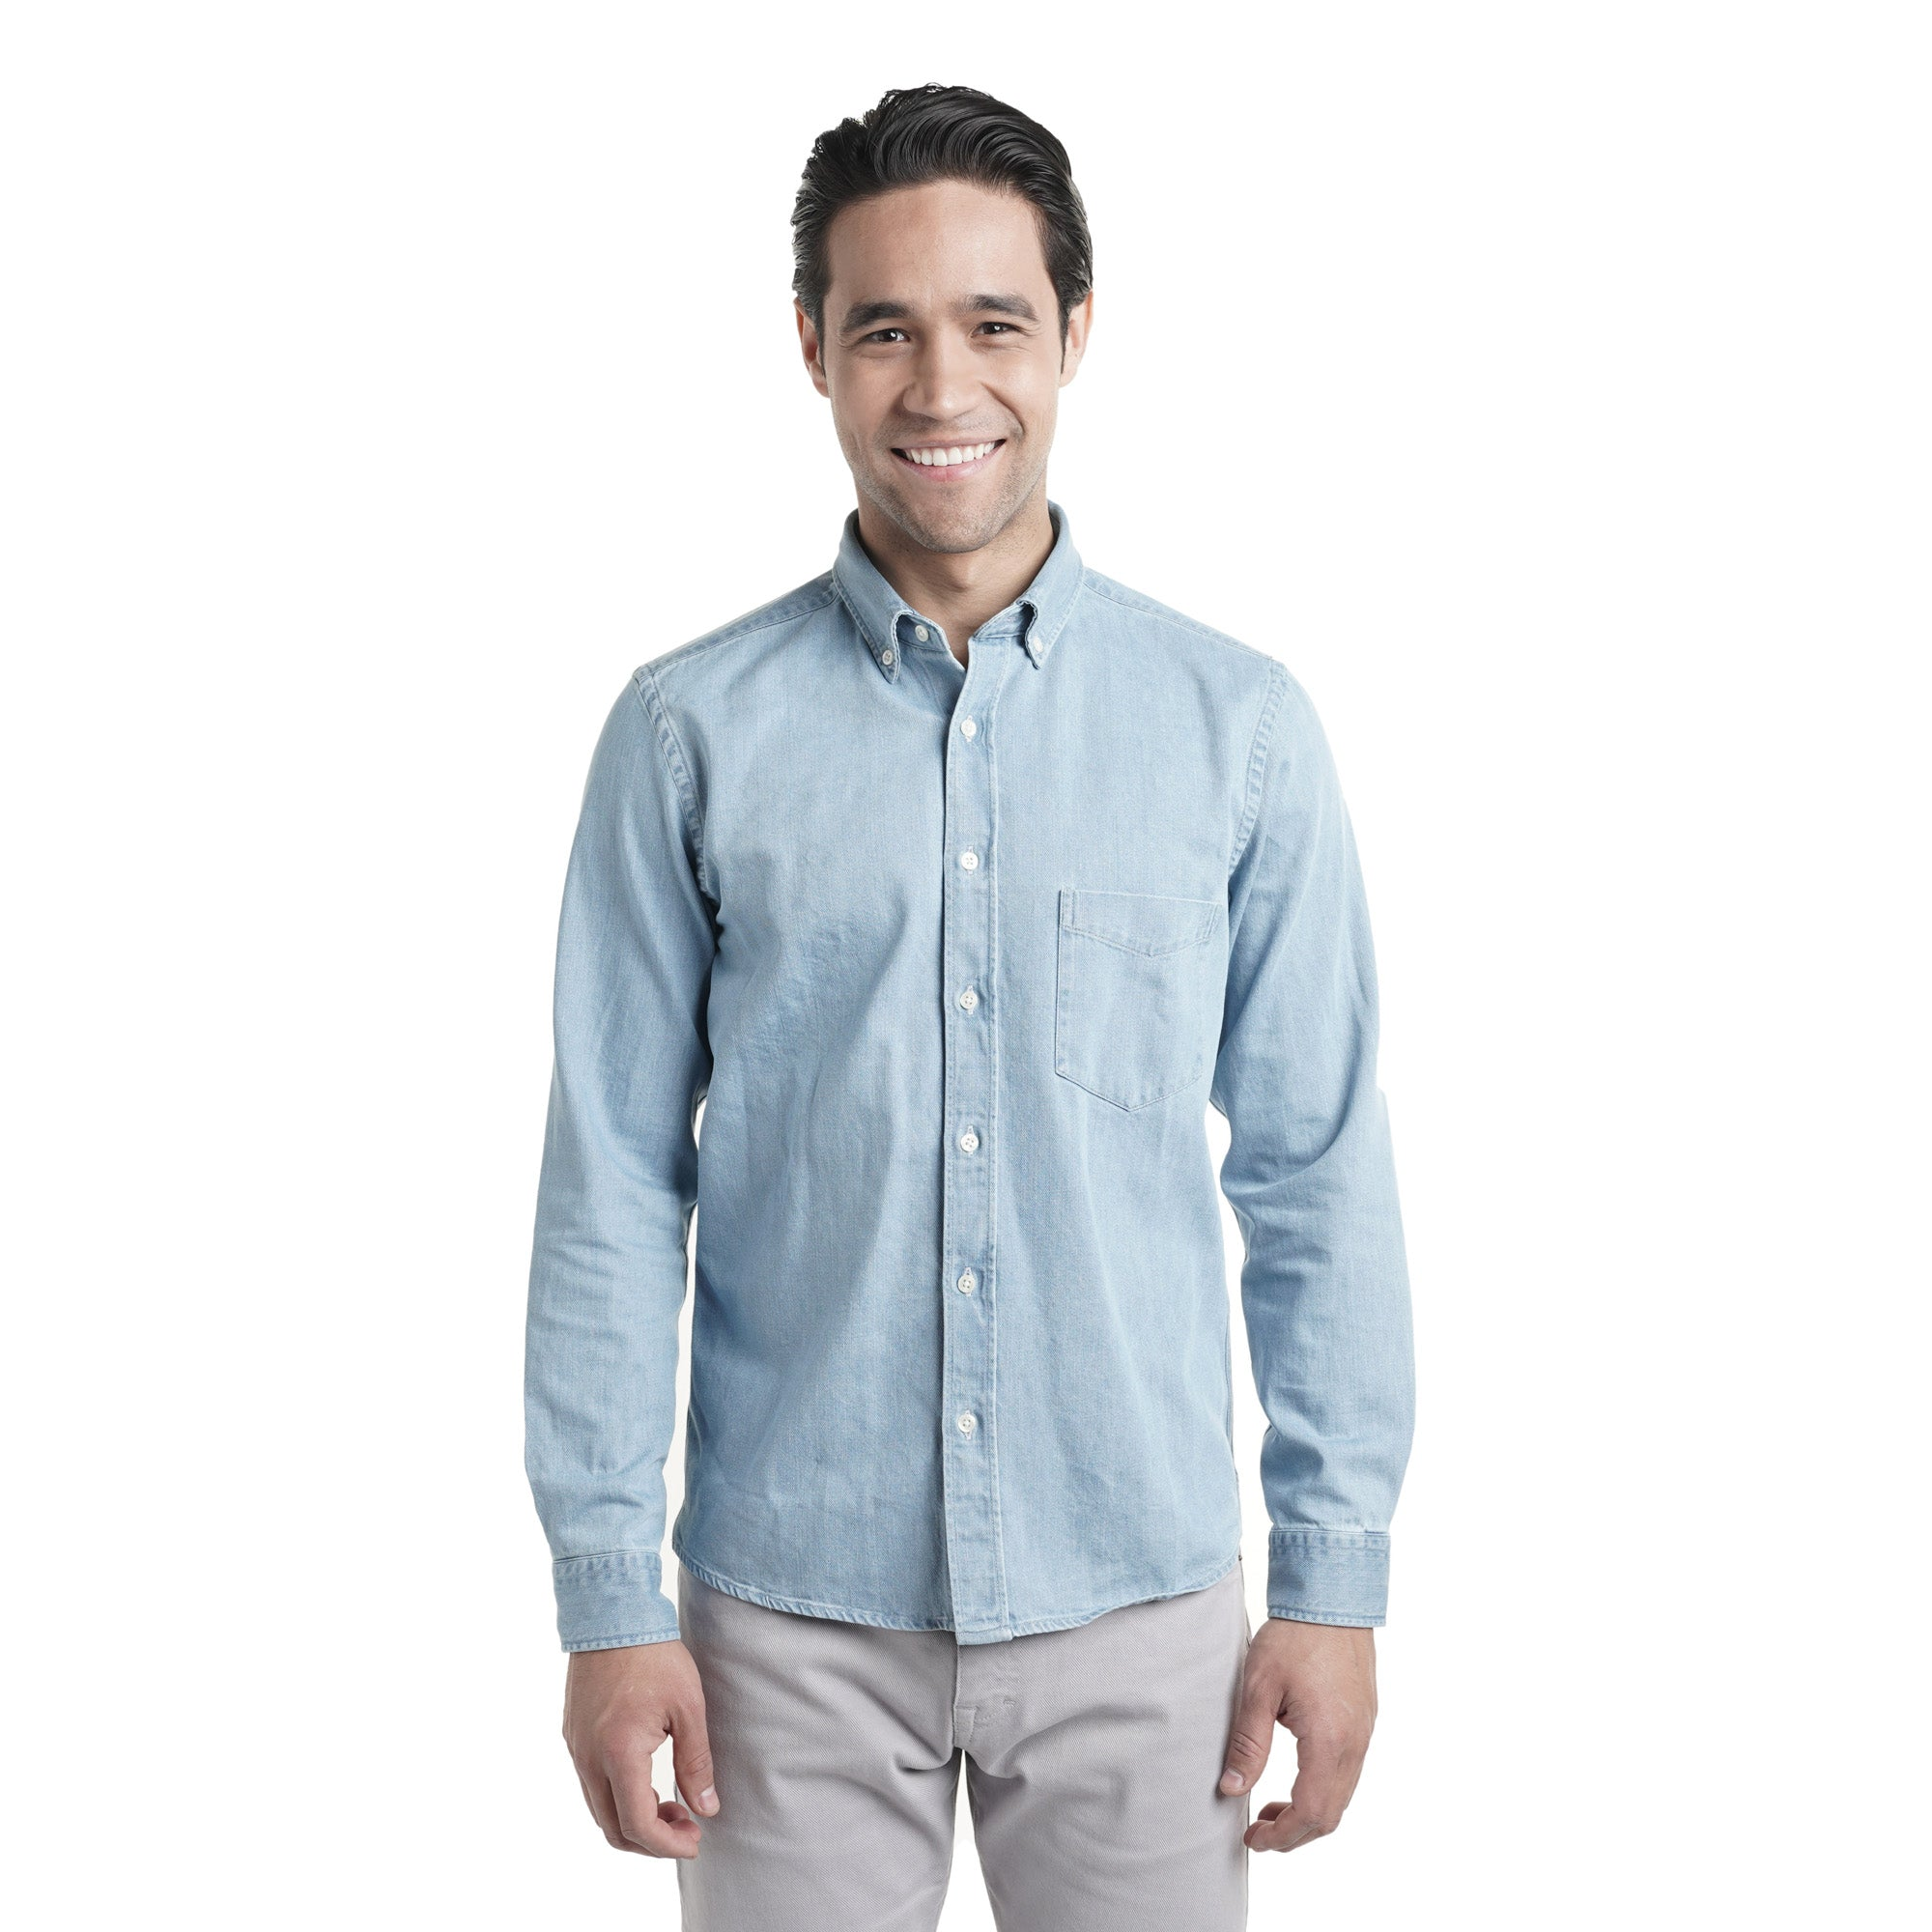 Denim Shirts Slim Fit - Light Wash